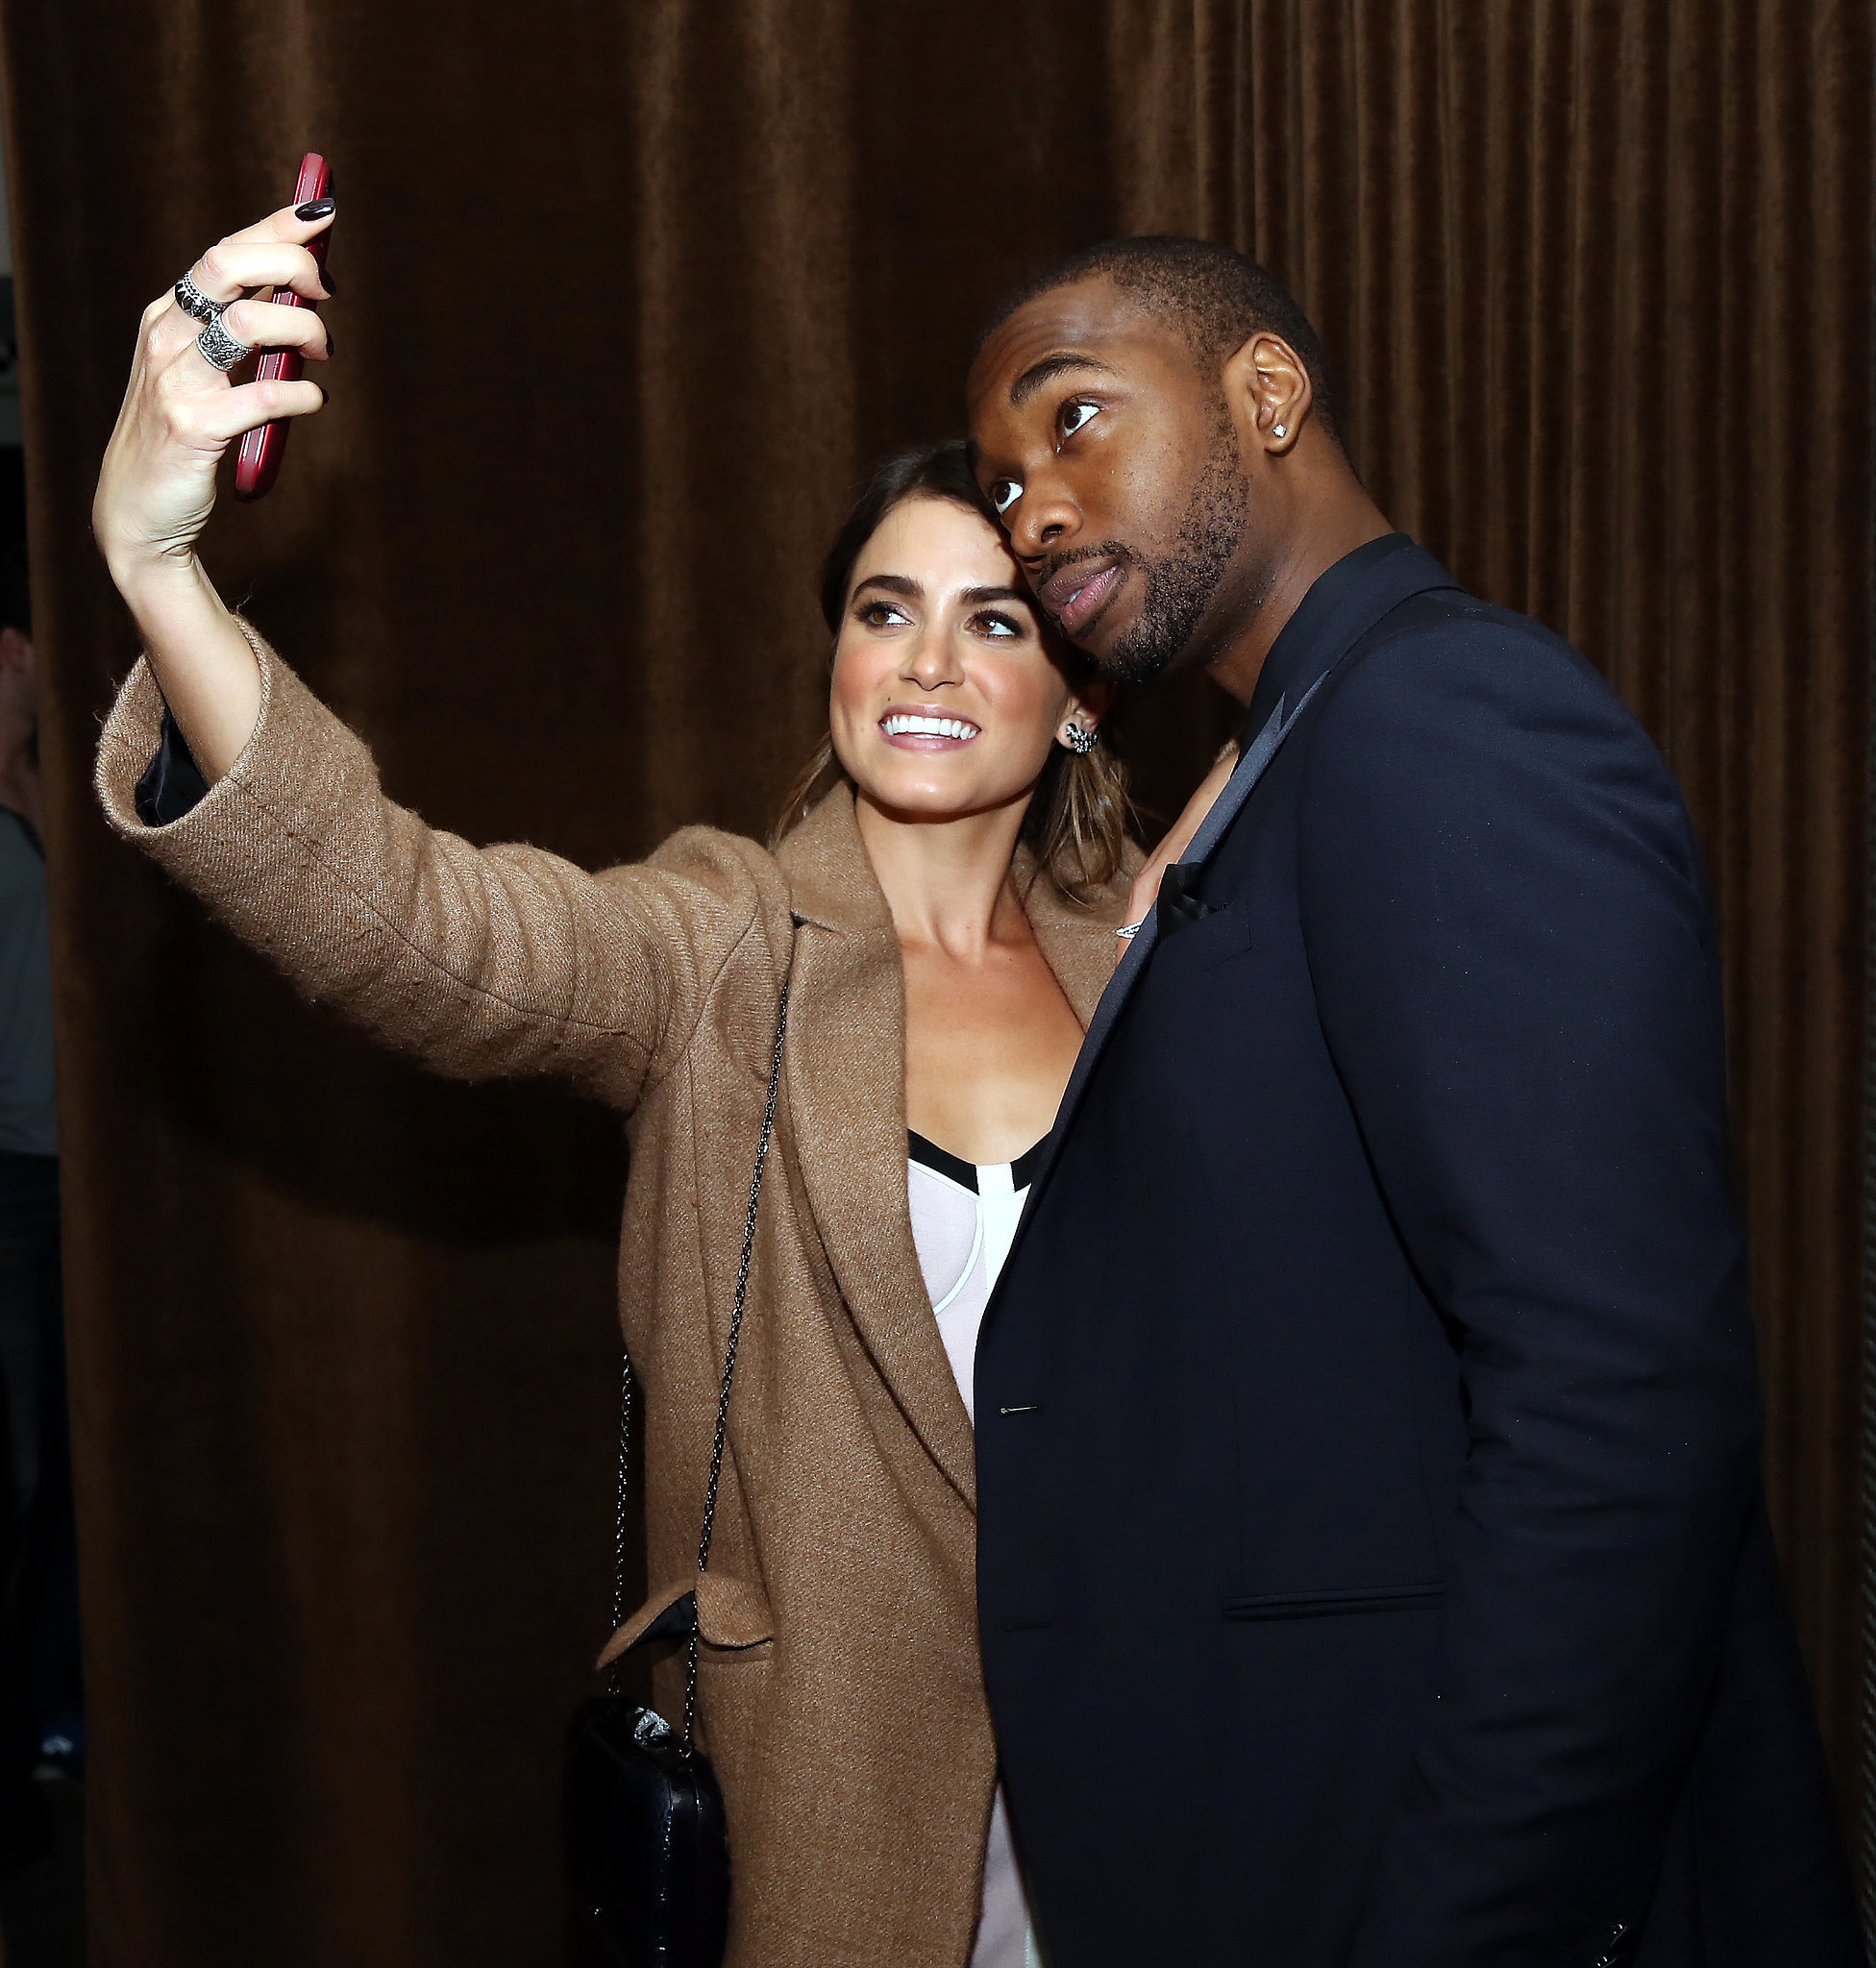 Nikki Reed and her Intramural costar Jay Pharoah took a photo at their Tribeca Film Festival after party in April 2014.